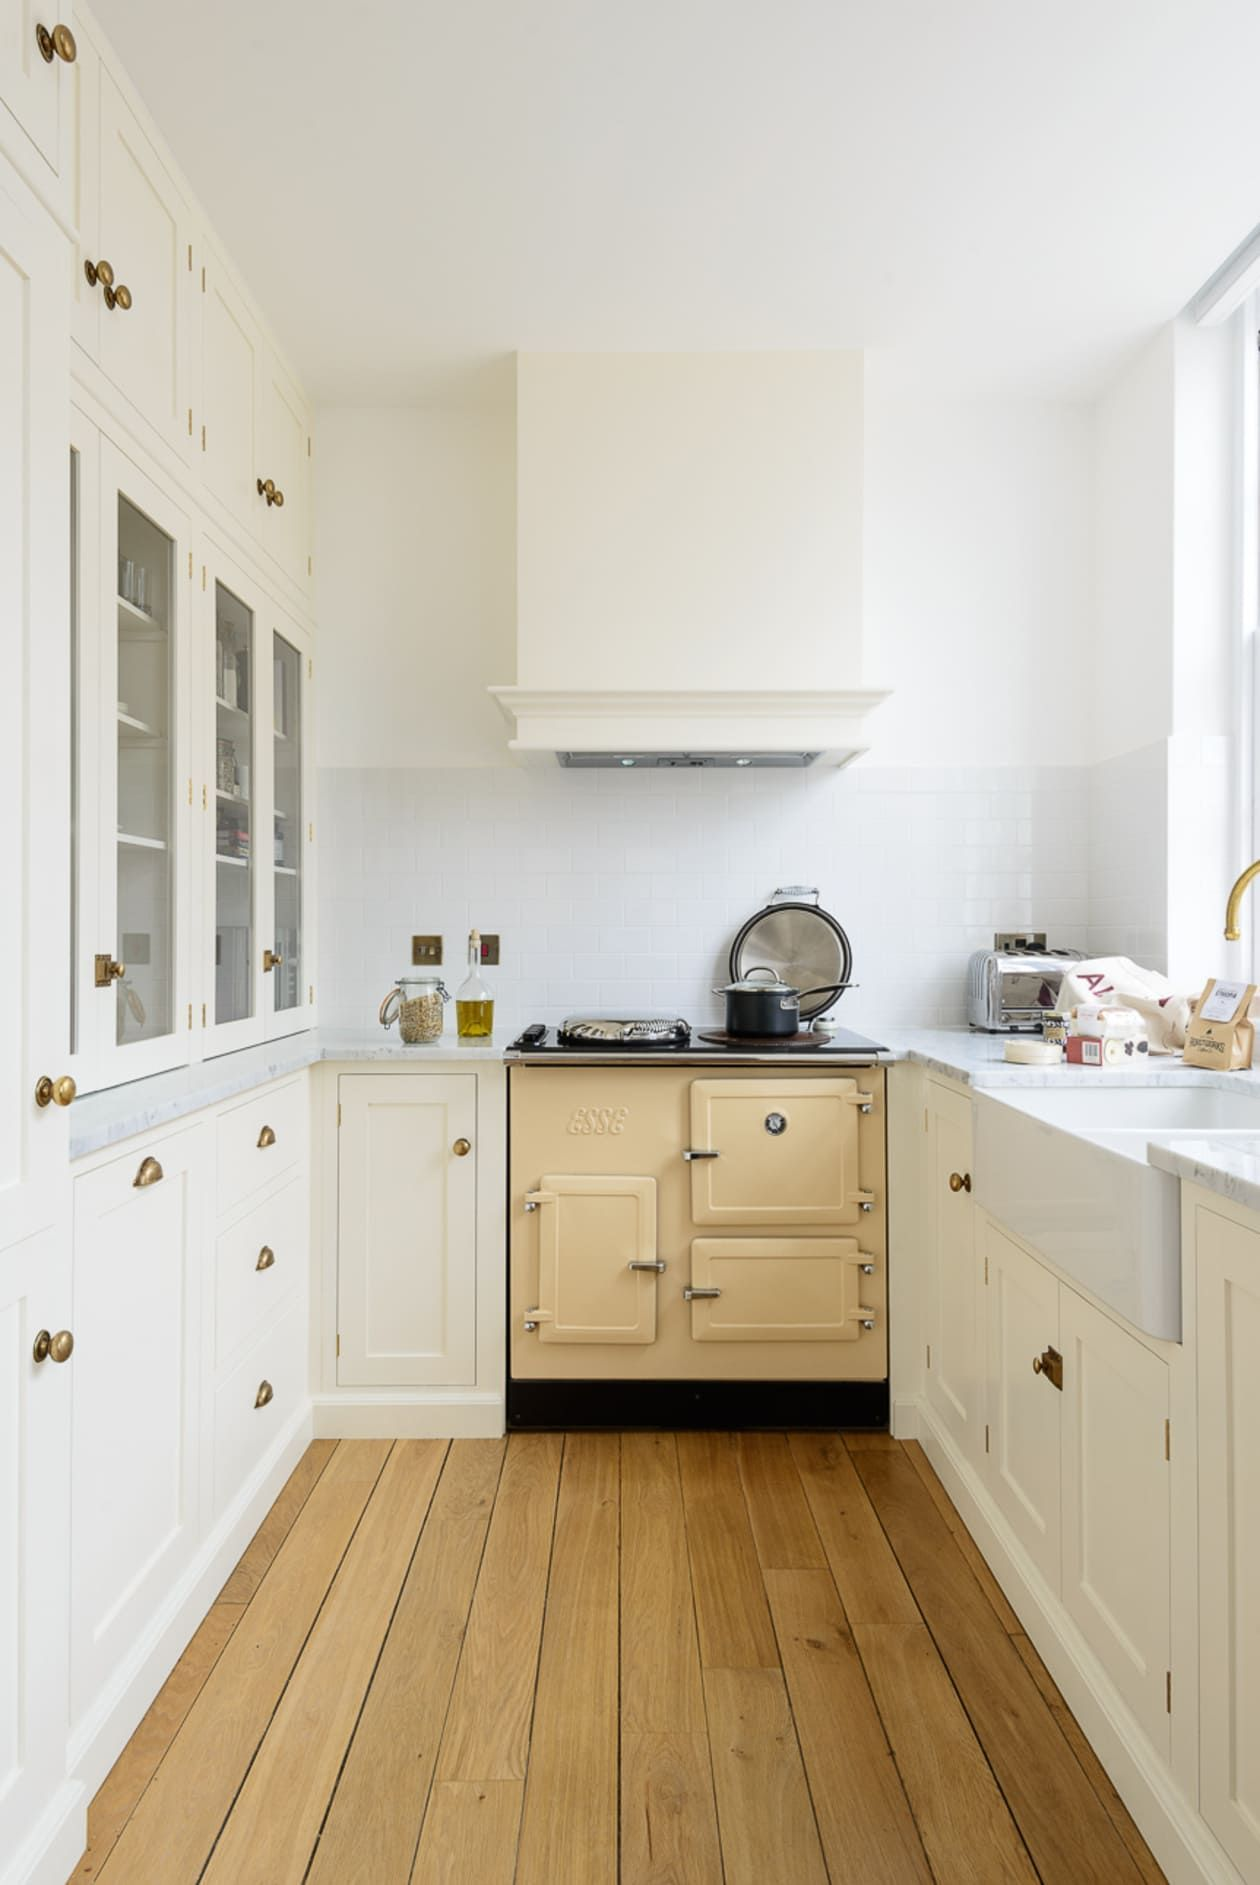 50 Best Small Kitchen Design Ideas - Decor Solutions for ... on Best Small Kitchens  id=34132